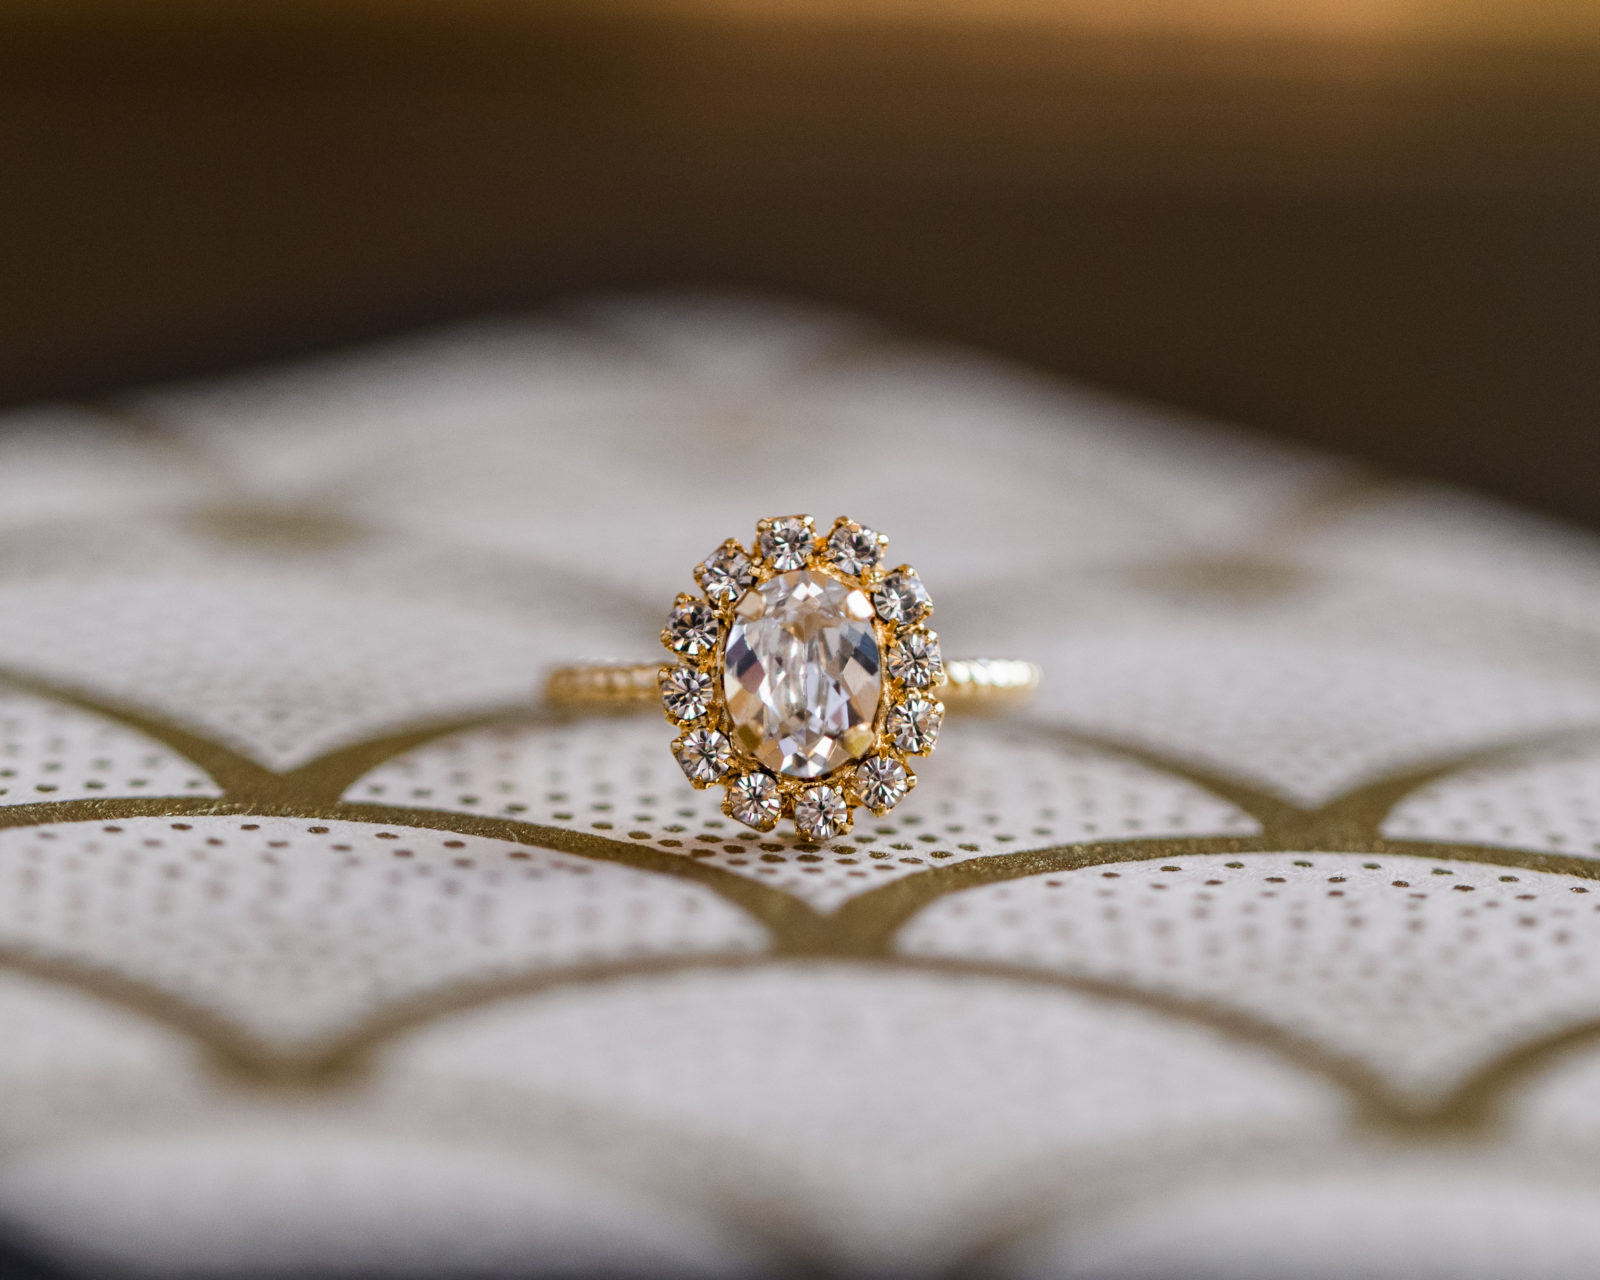 Ornate wedding ring design: Wedding details for your photographer to capture featured on Alexa Kay Events